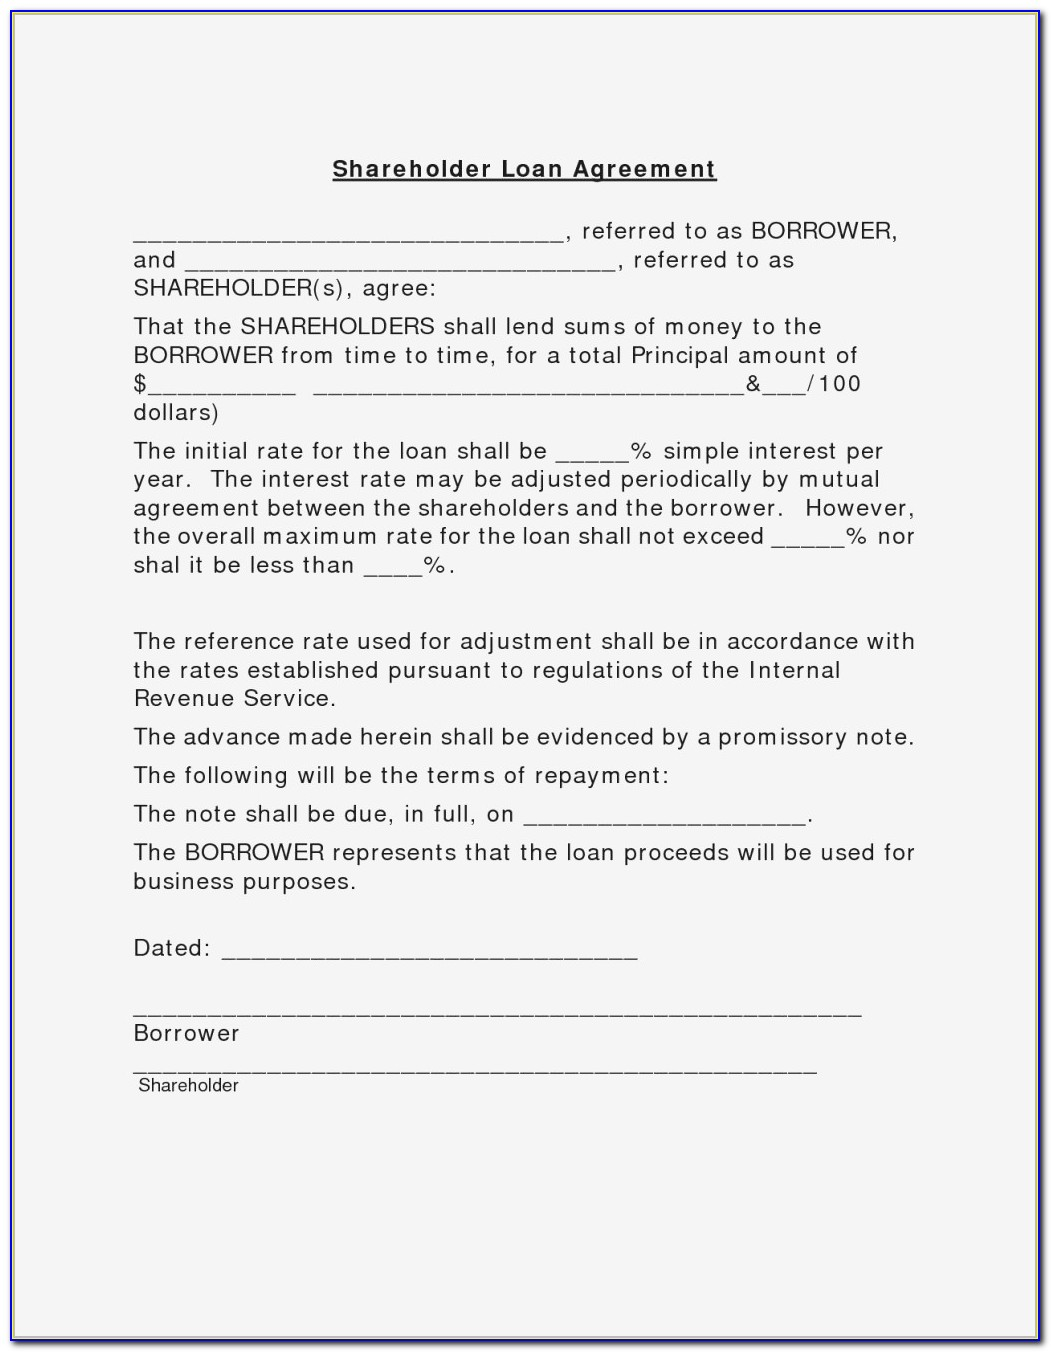 Shareholders Agreement Template Free Uk New Shareholders Agreement For Shareholder Loan Agreement Sample